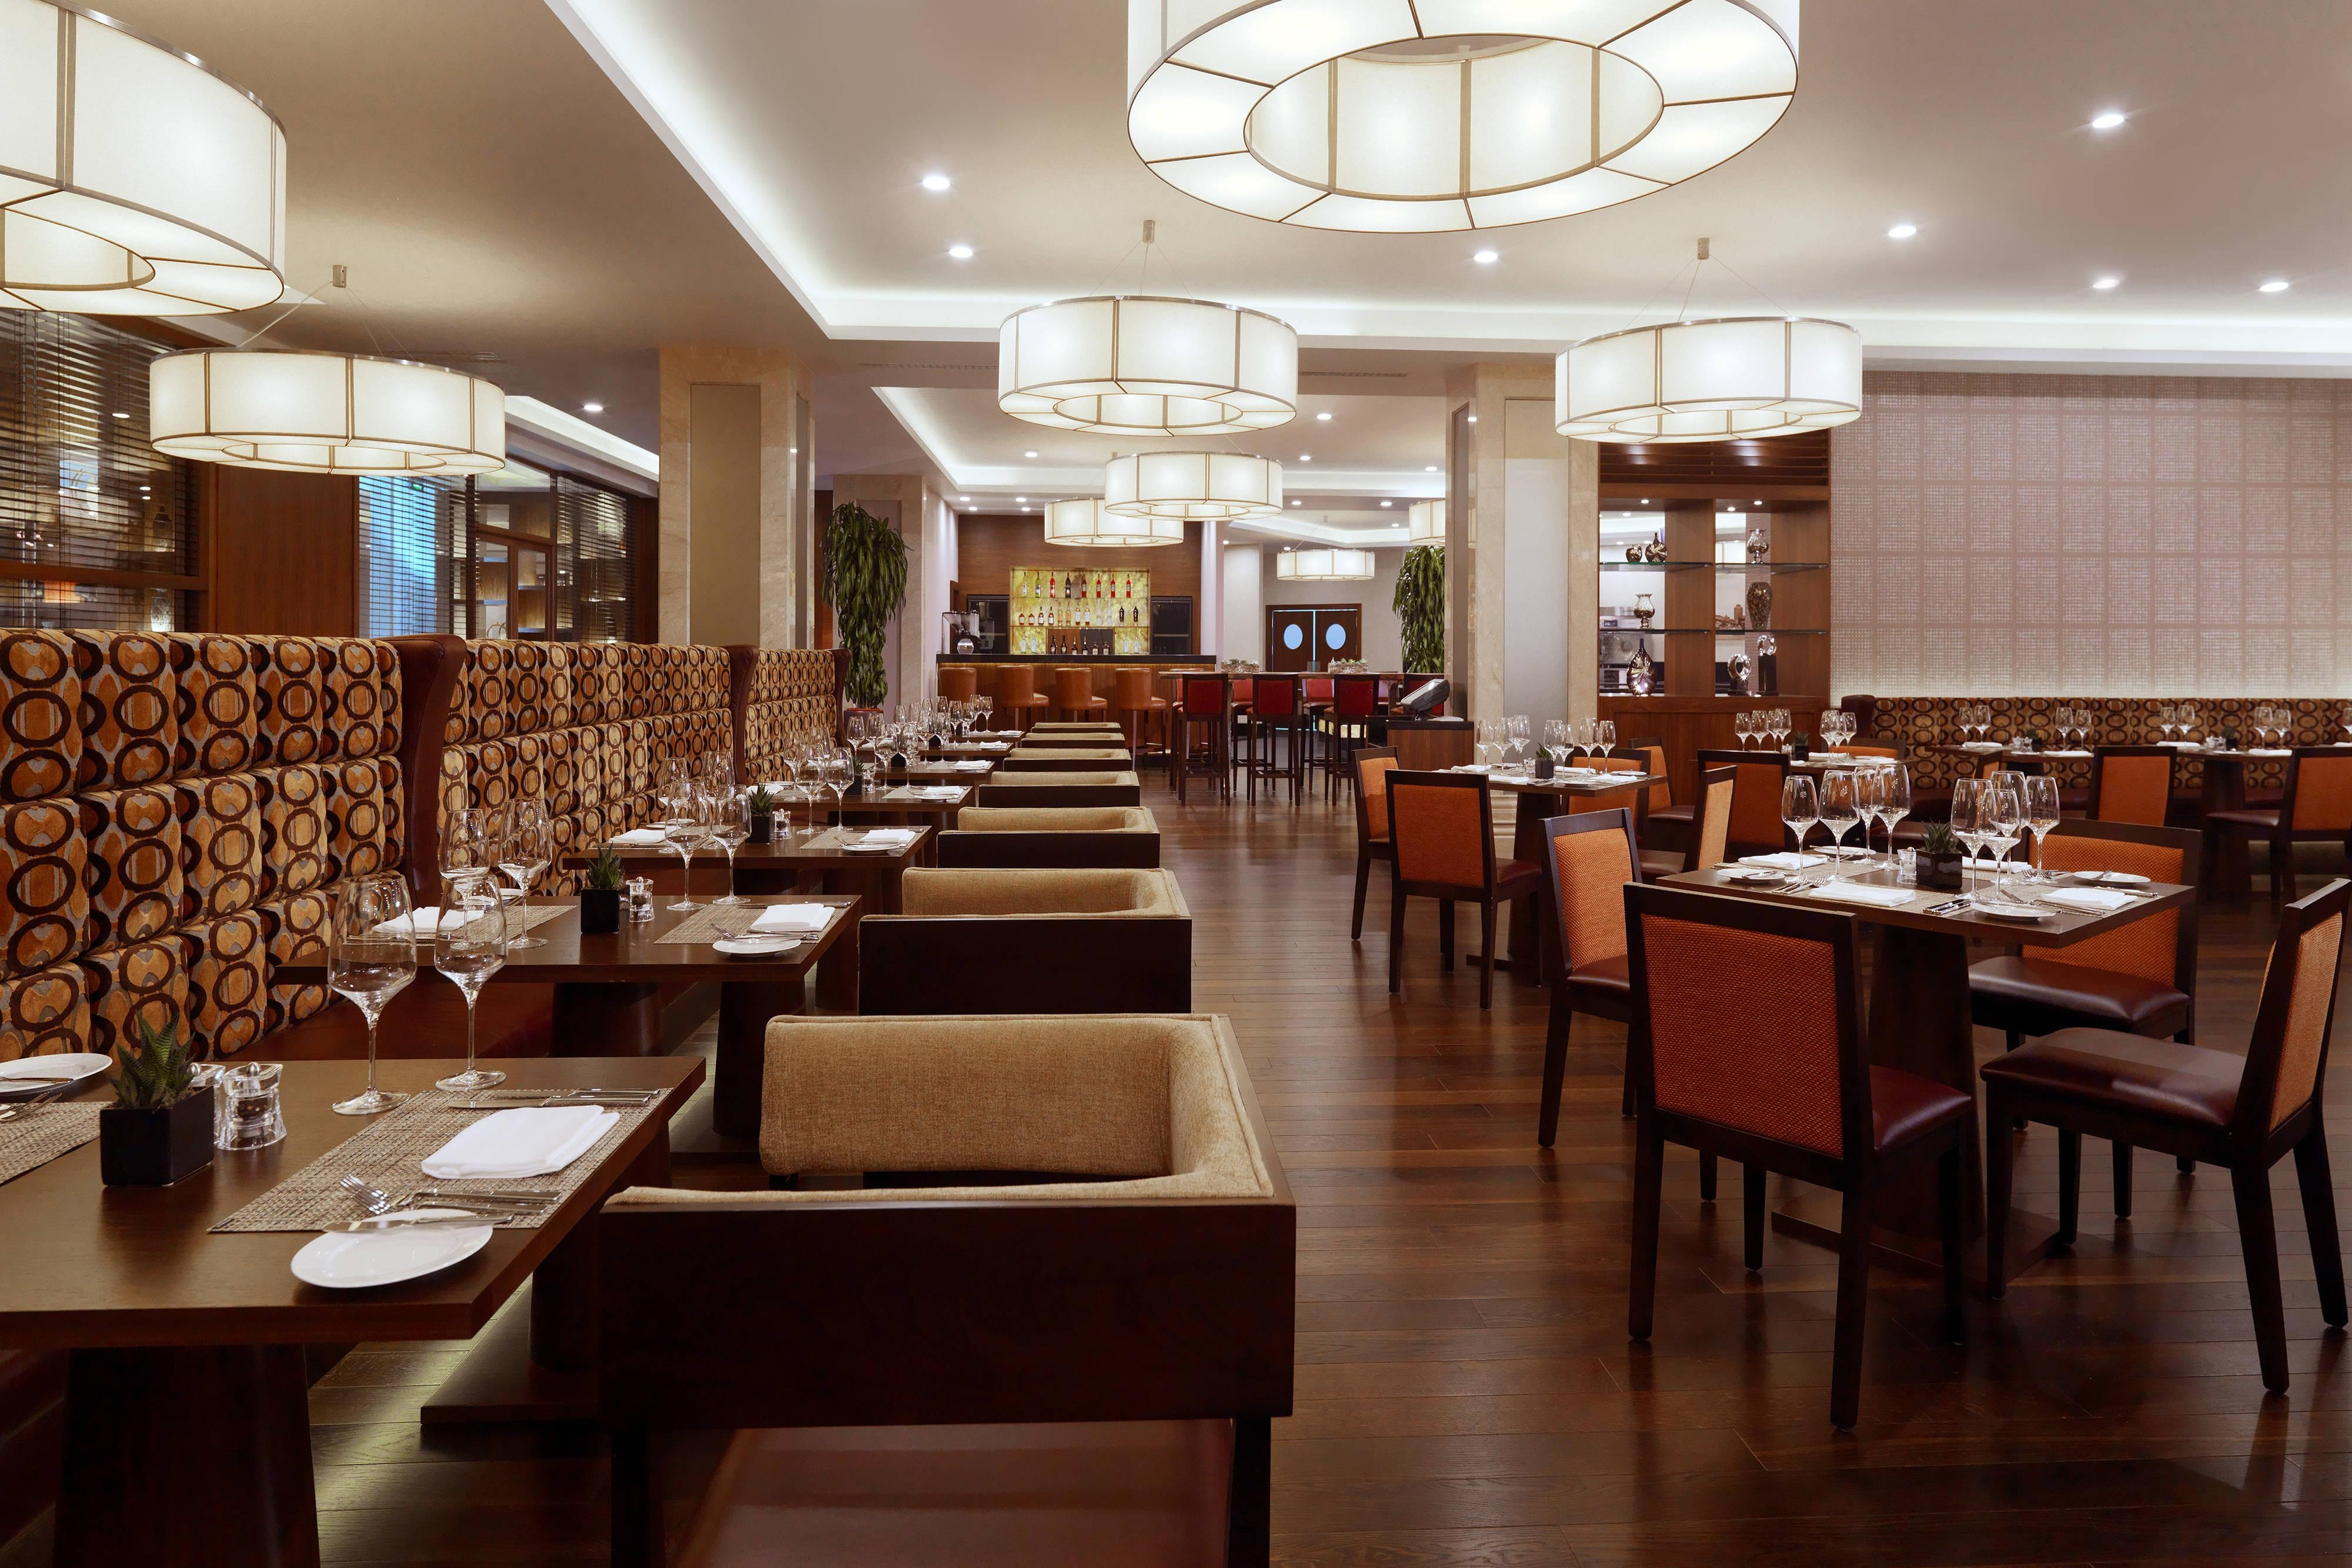 Steakhouse restaurant in Moscow